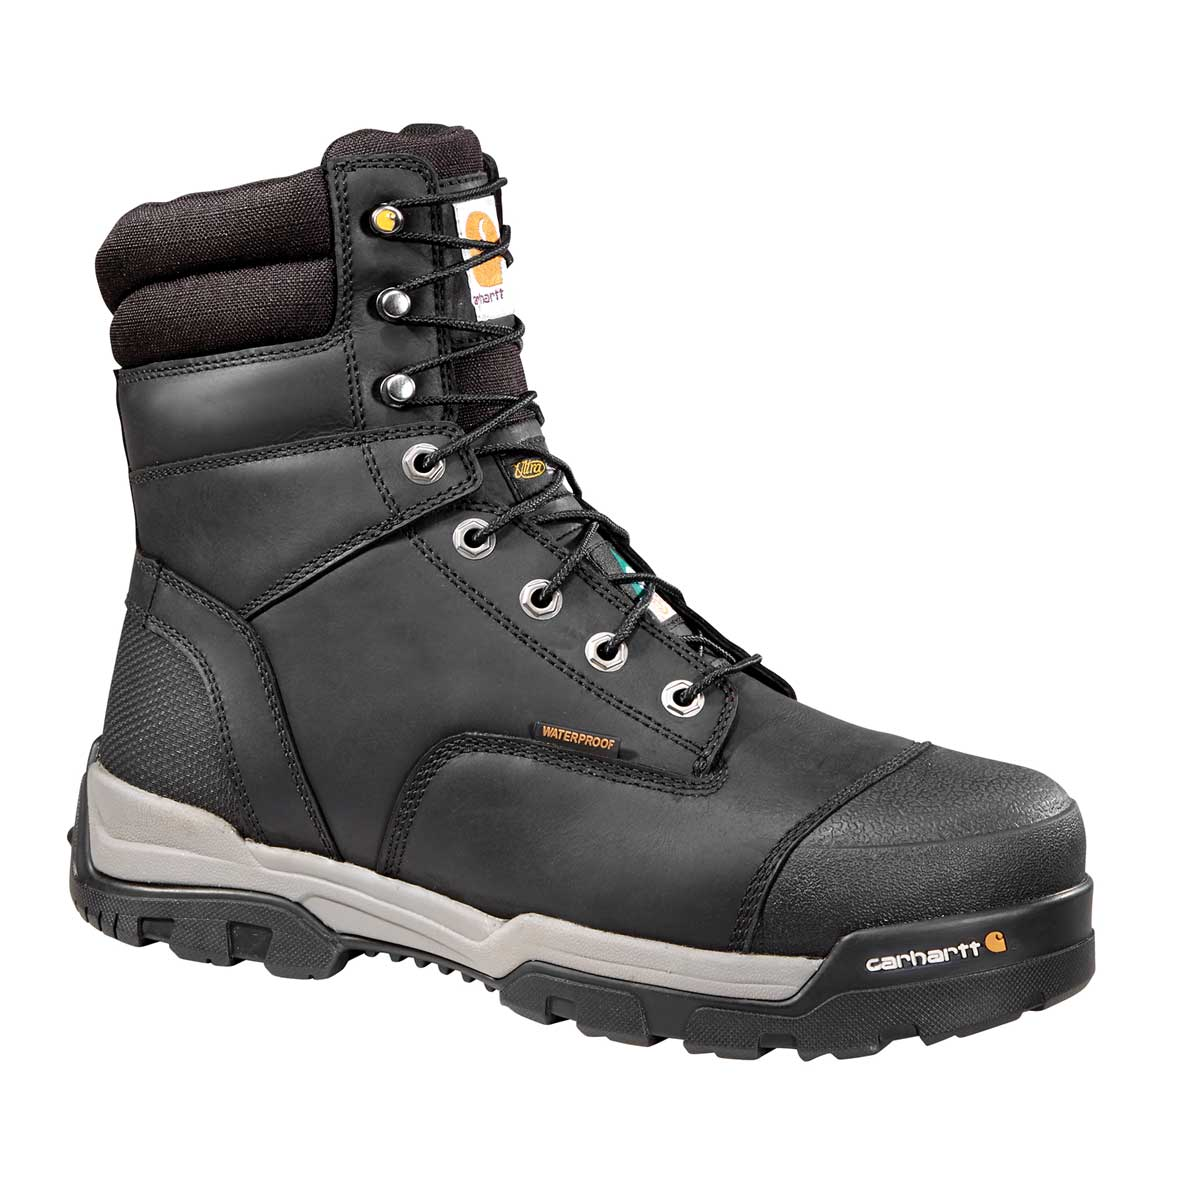 "Carhartt 8"" Rugged Flex Waterproof CSA Boot"